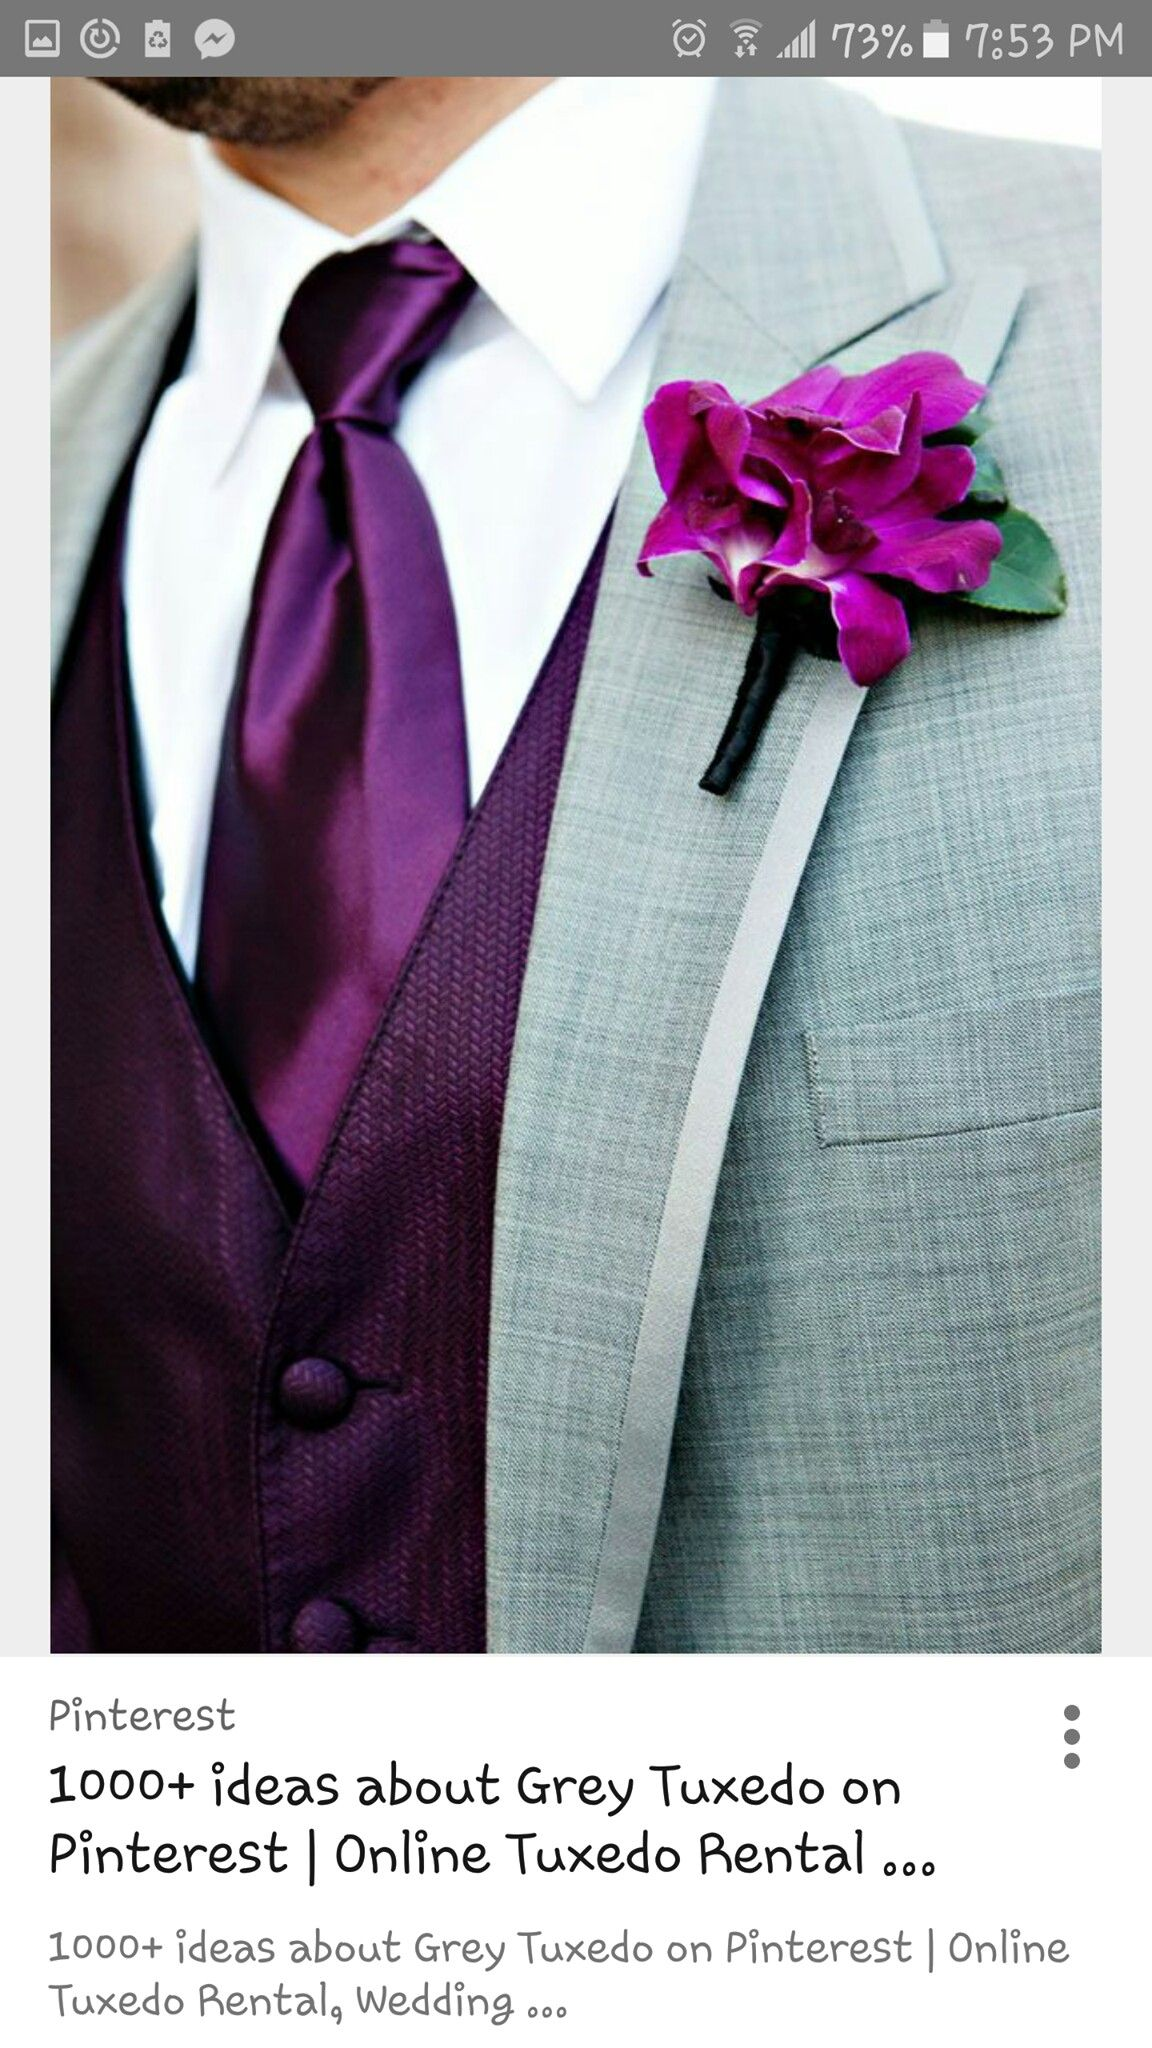 Pin by Christina Blakely on creepy | Pinterest | Wedding suits ...